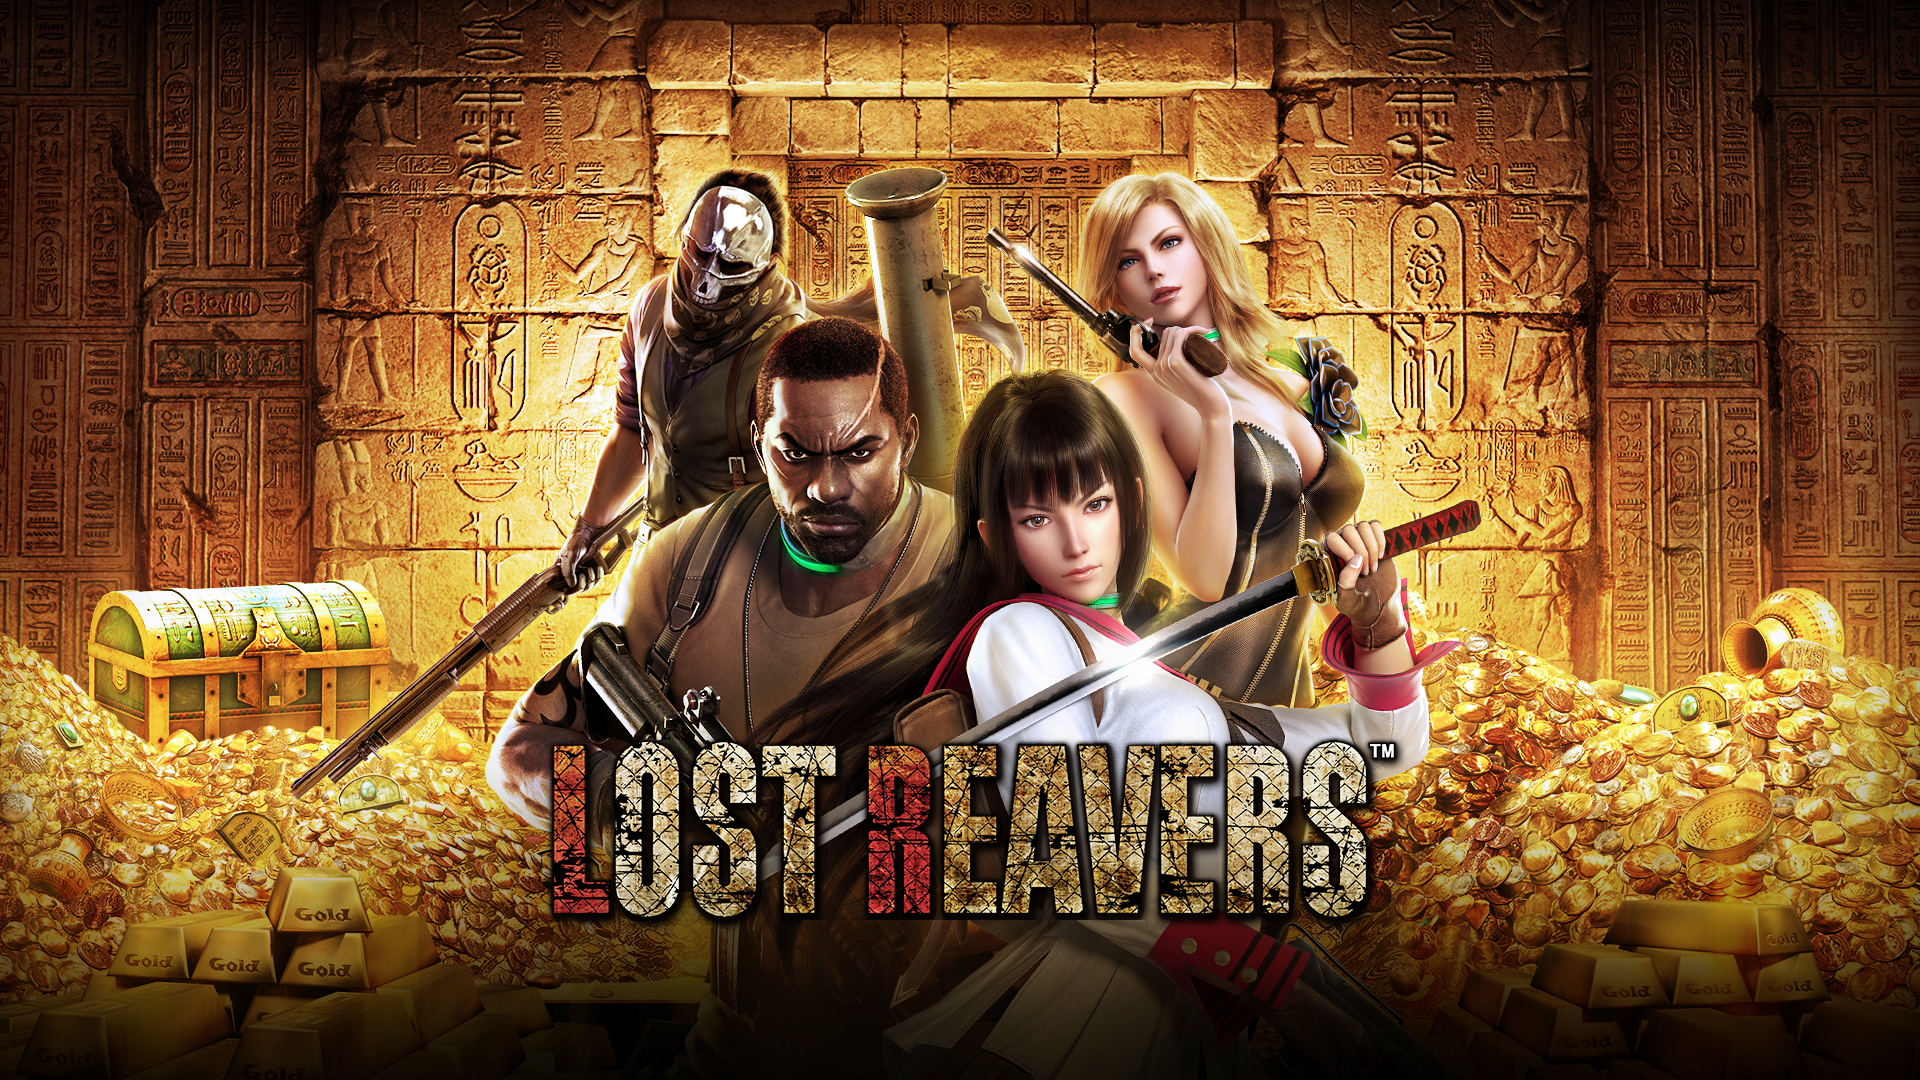 Lost Reavers impression: This Wii U exclusive is good